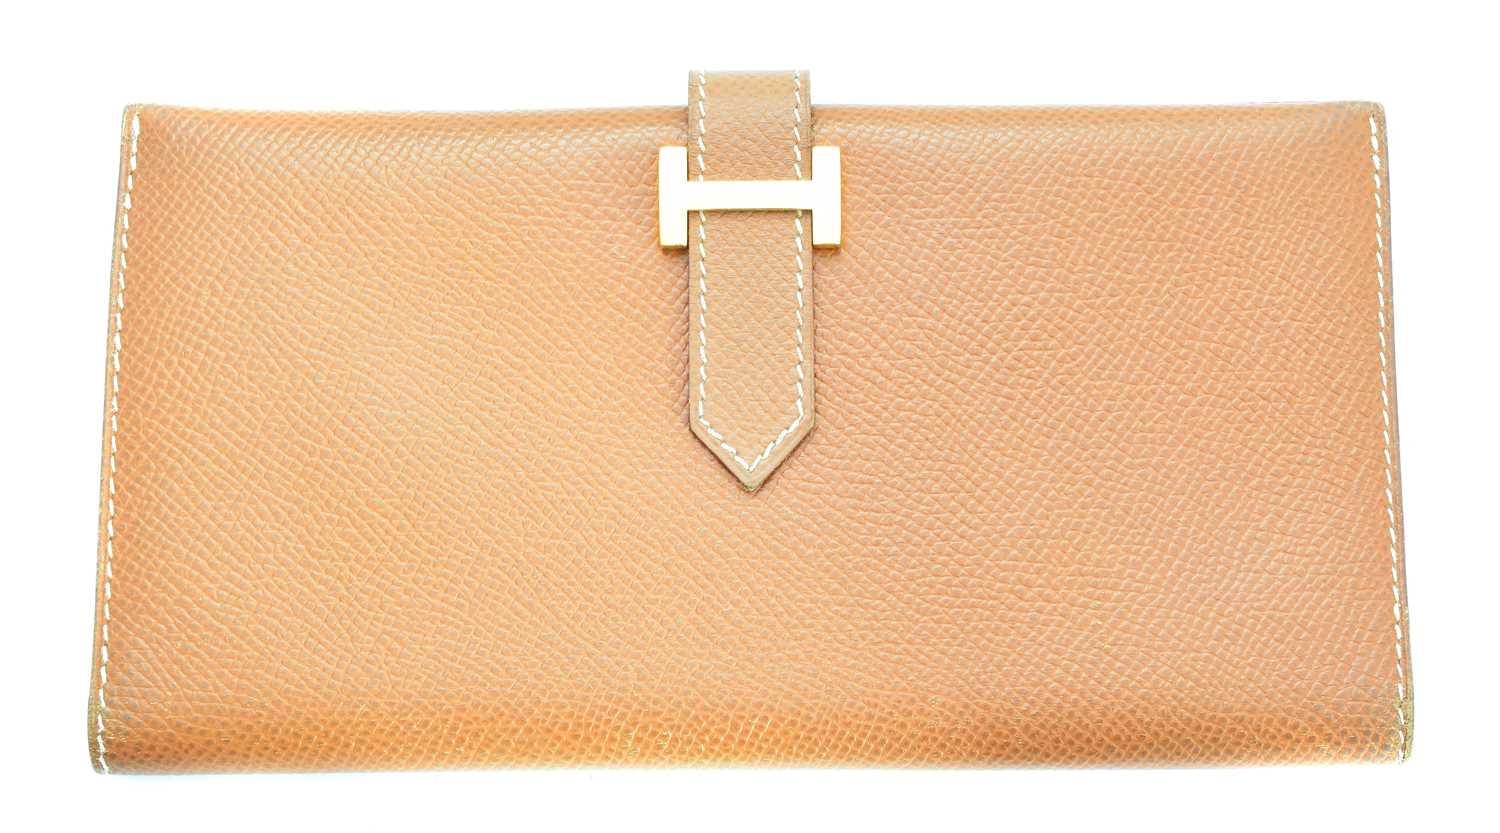 Lot 22-A Hermes Bearn wallet